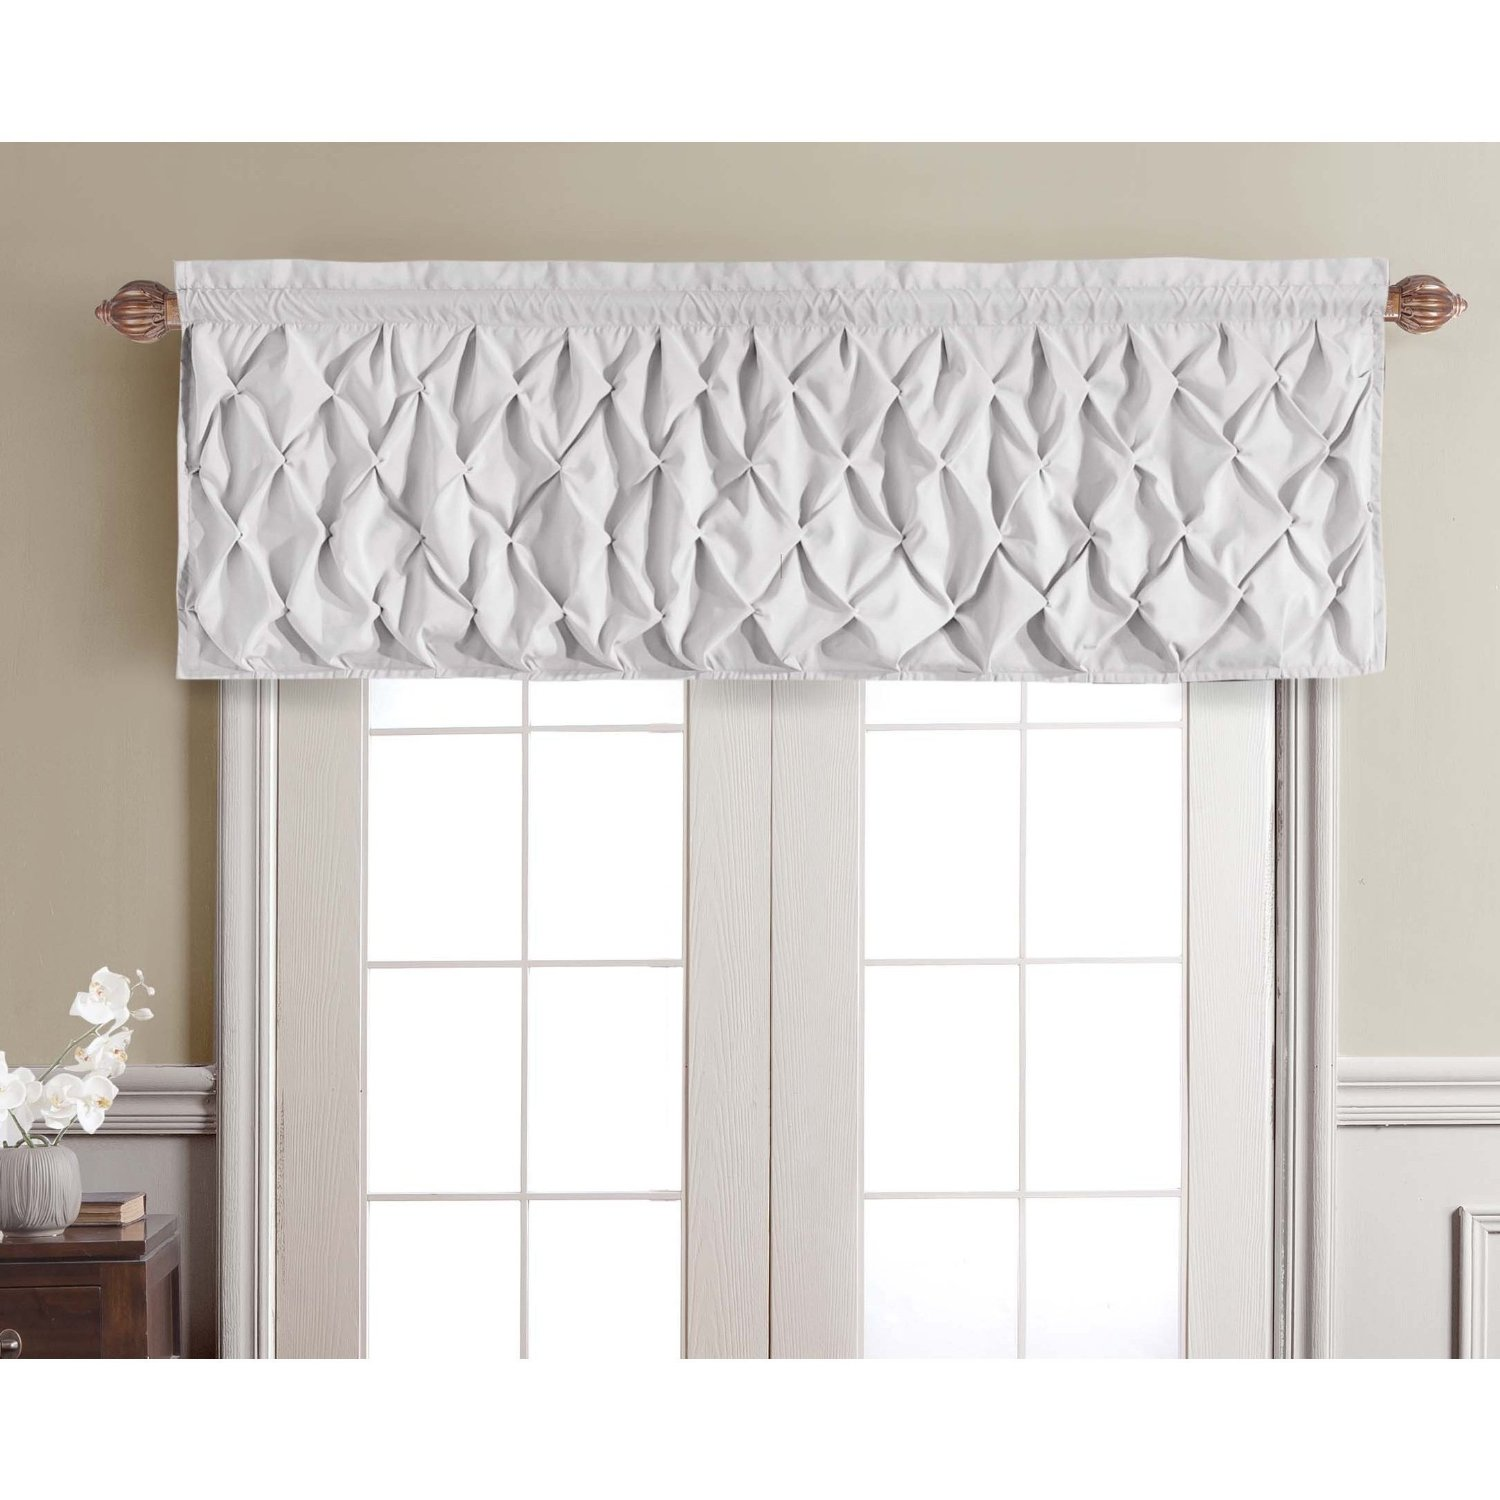 blind using most valance on windows curved bring in rod gallery venetian room new draperry wrought nuance with living elegant ivory brown ruffle black and seen treatment featured for valances combined interior dark iron curtain hanging two